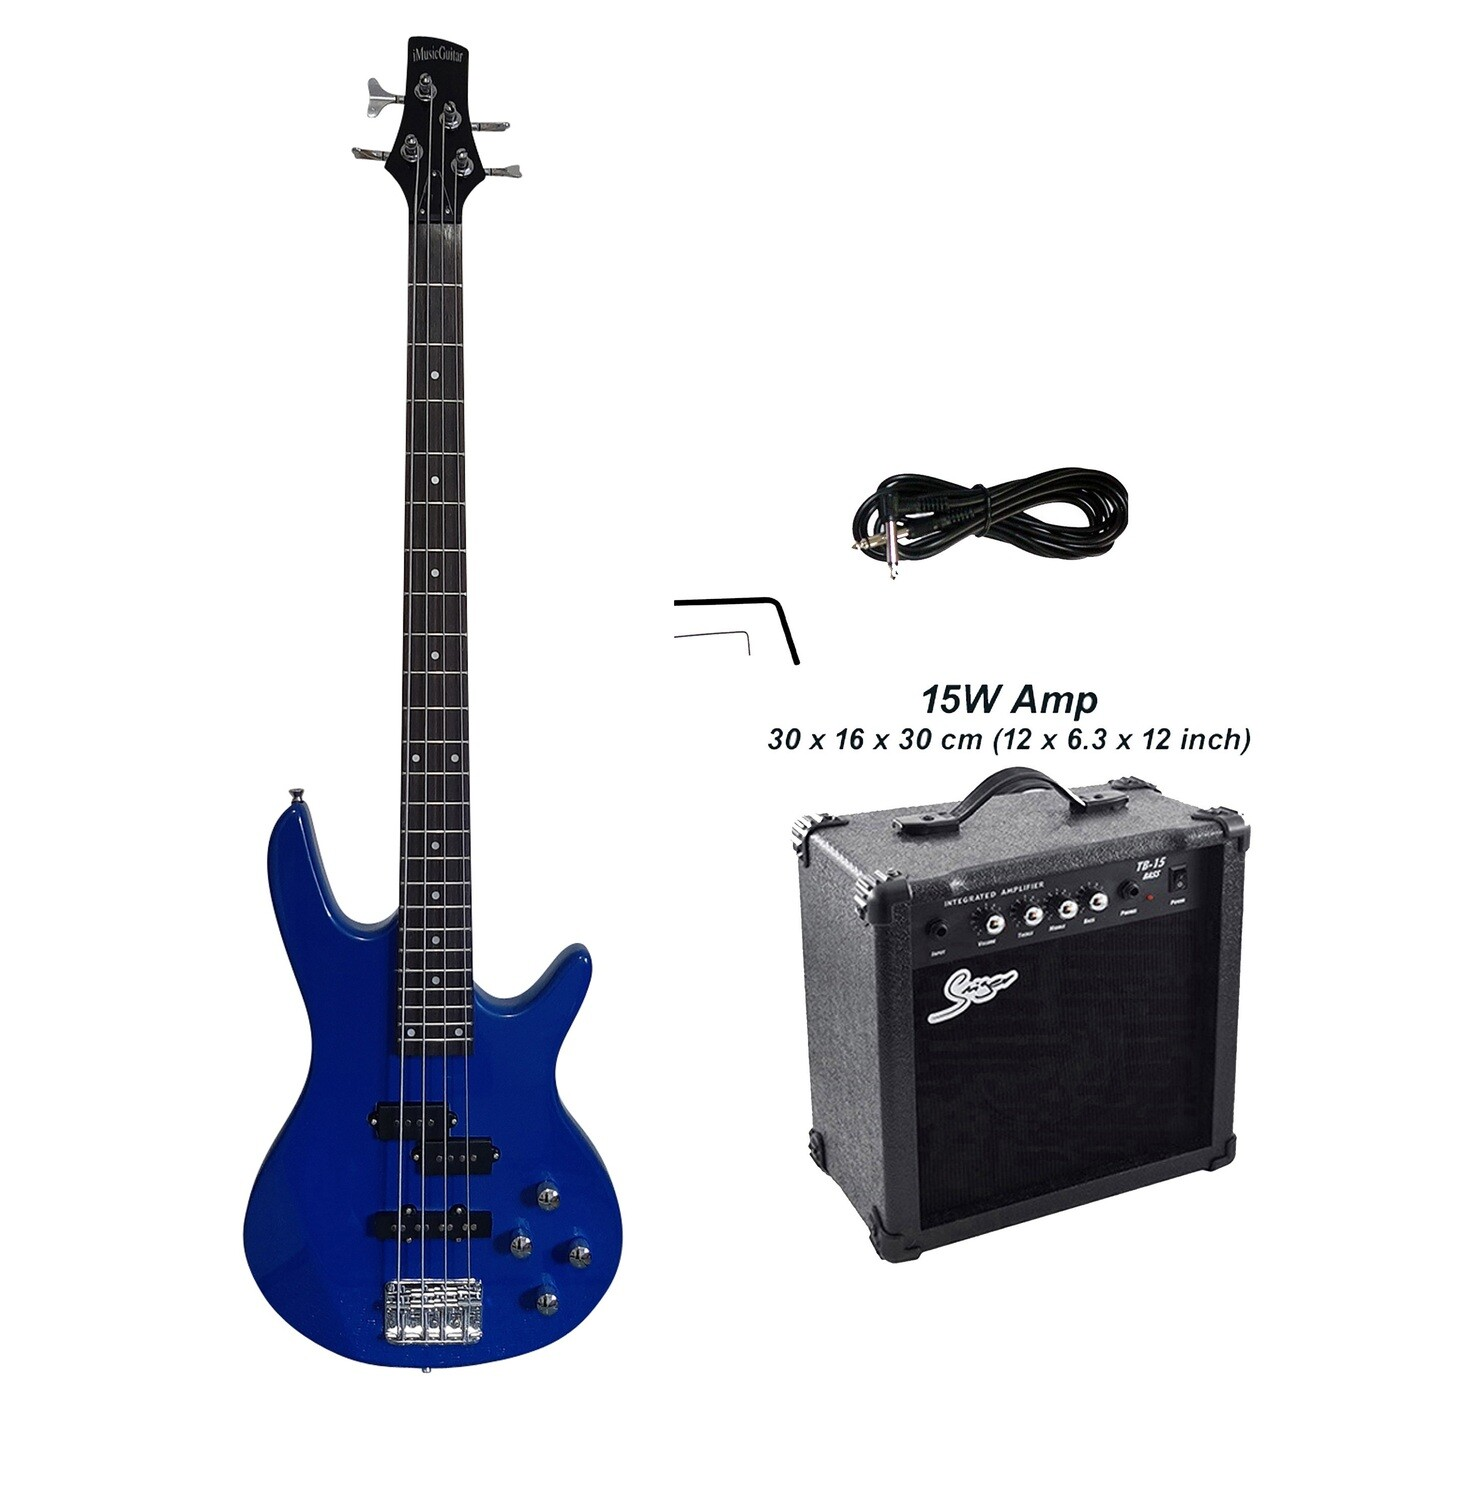 Bass Guitar 4 String Blue iMusicGuitar iMEB886PKT with 15W Amp Package